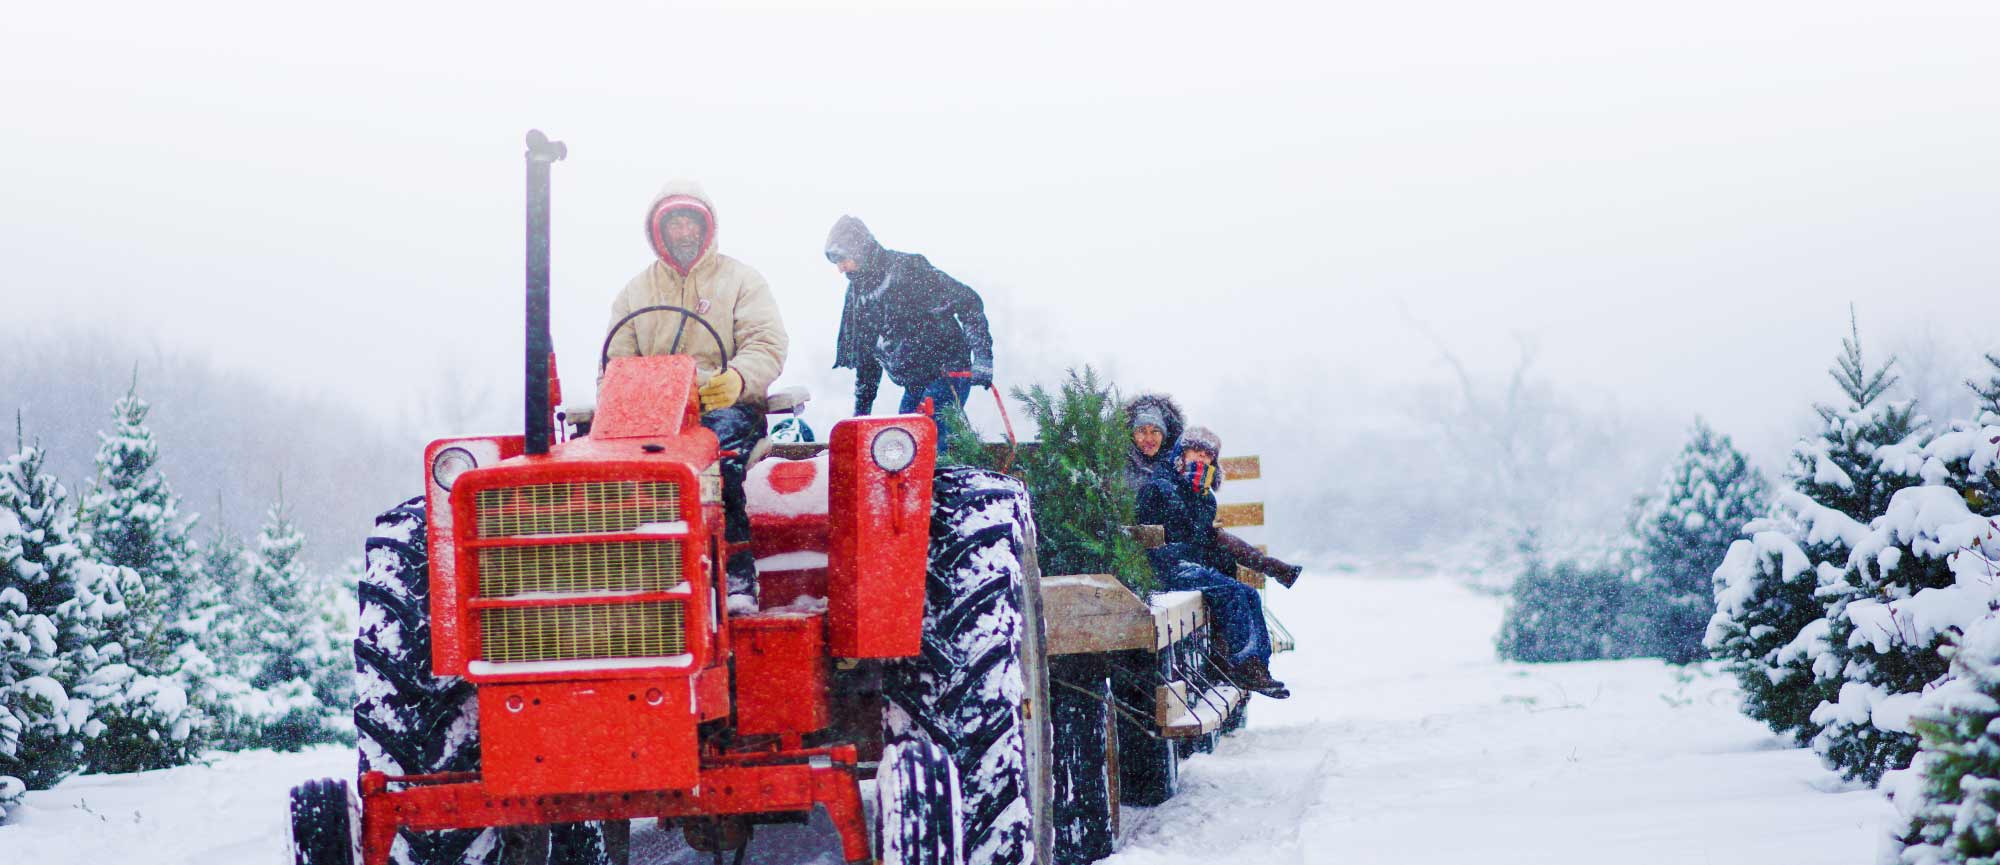 Take a wagon ride out to our Cut-your-own Christmas Tree Farm at Richardson Christmas Tree Farm in Spring Grove, Illinois